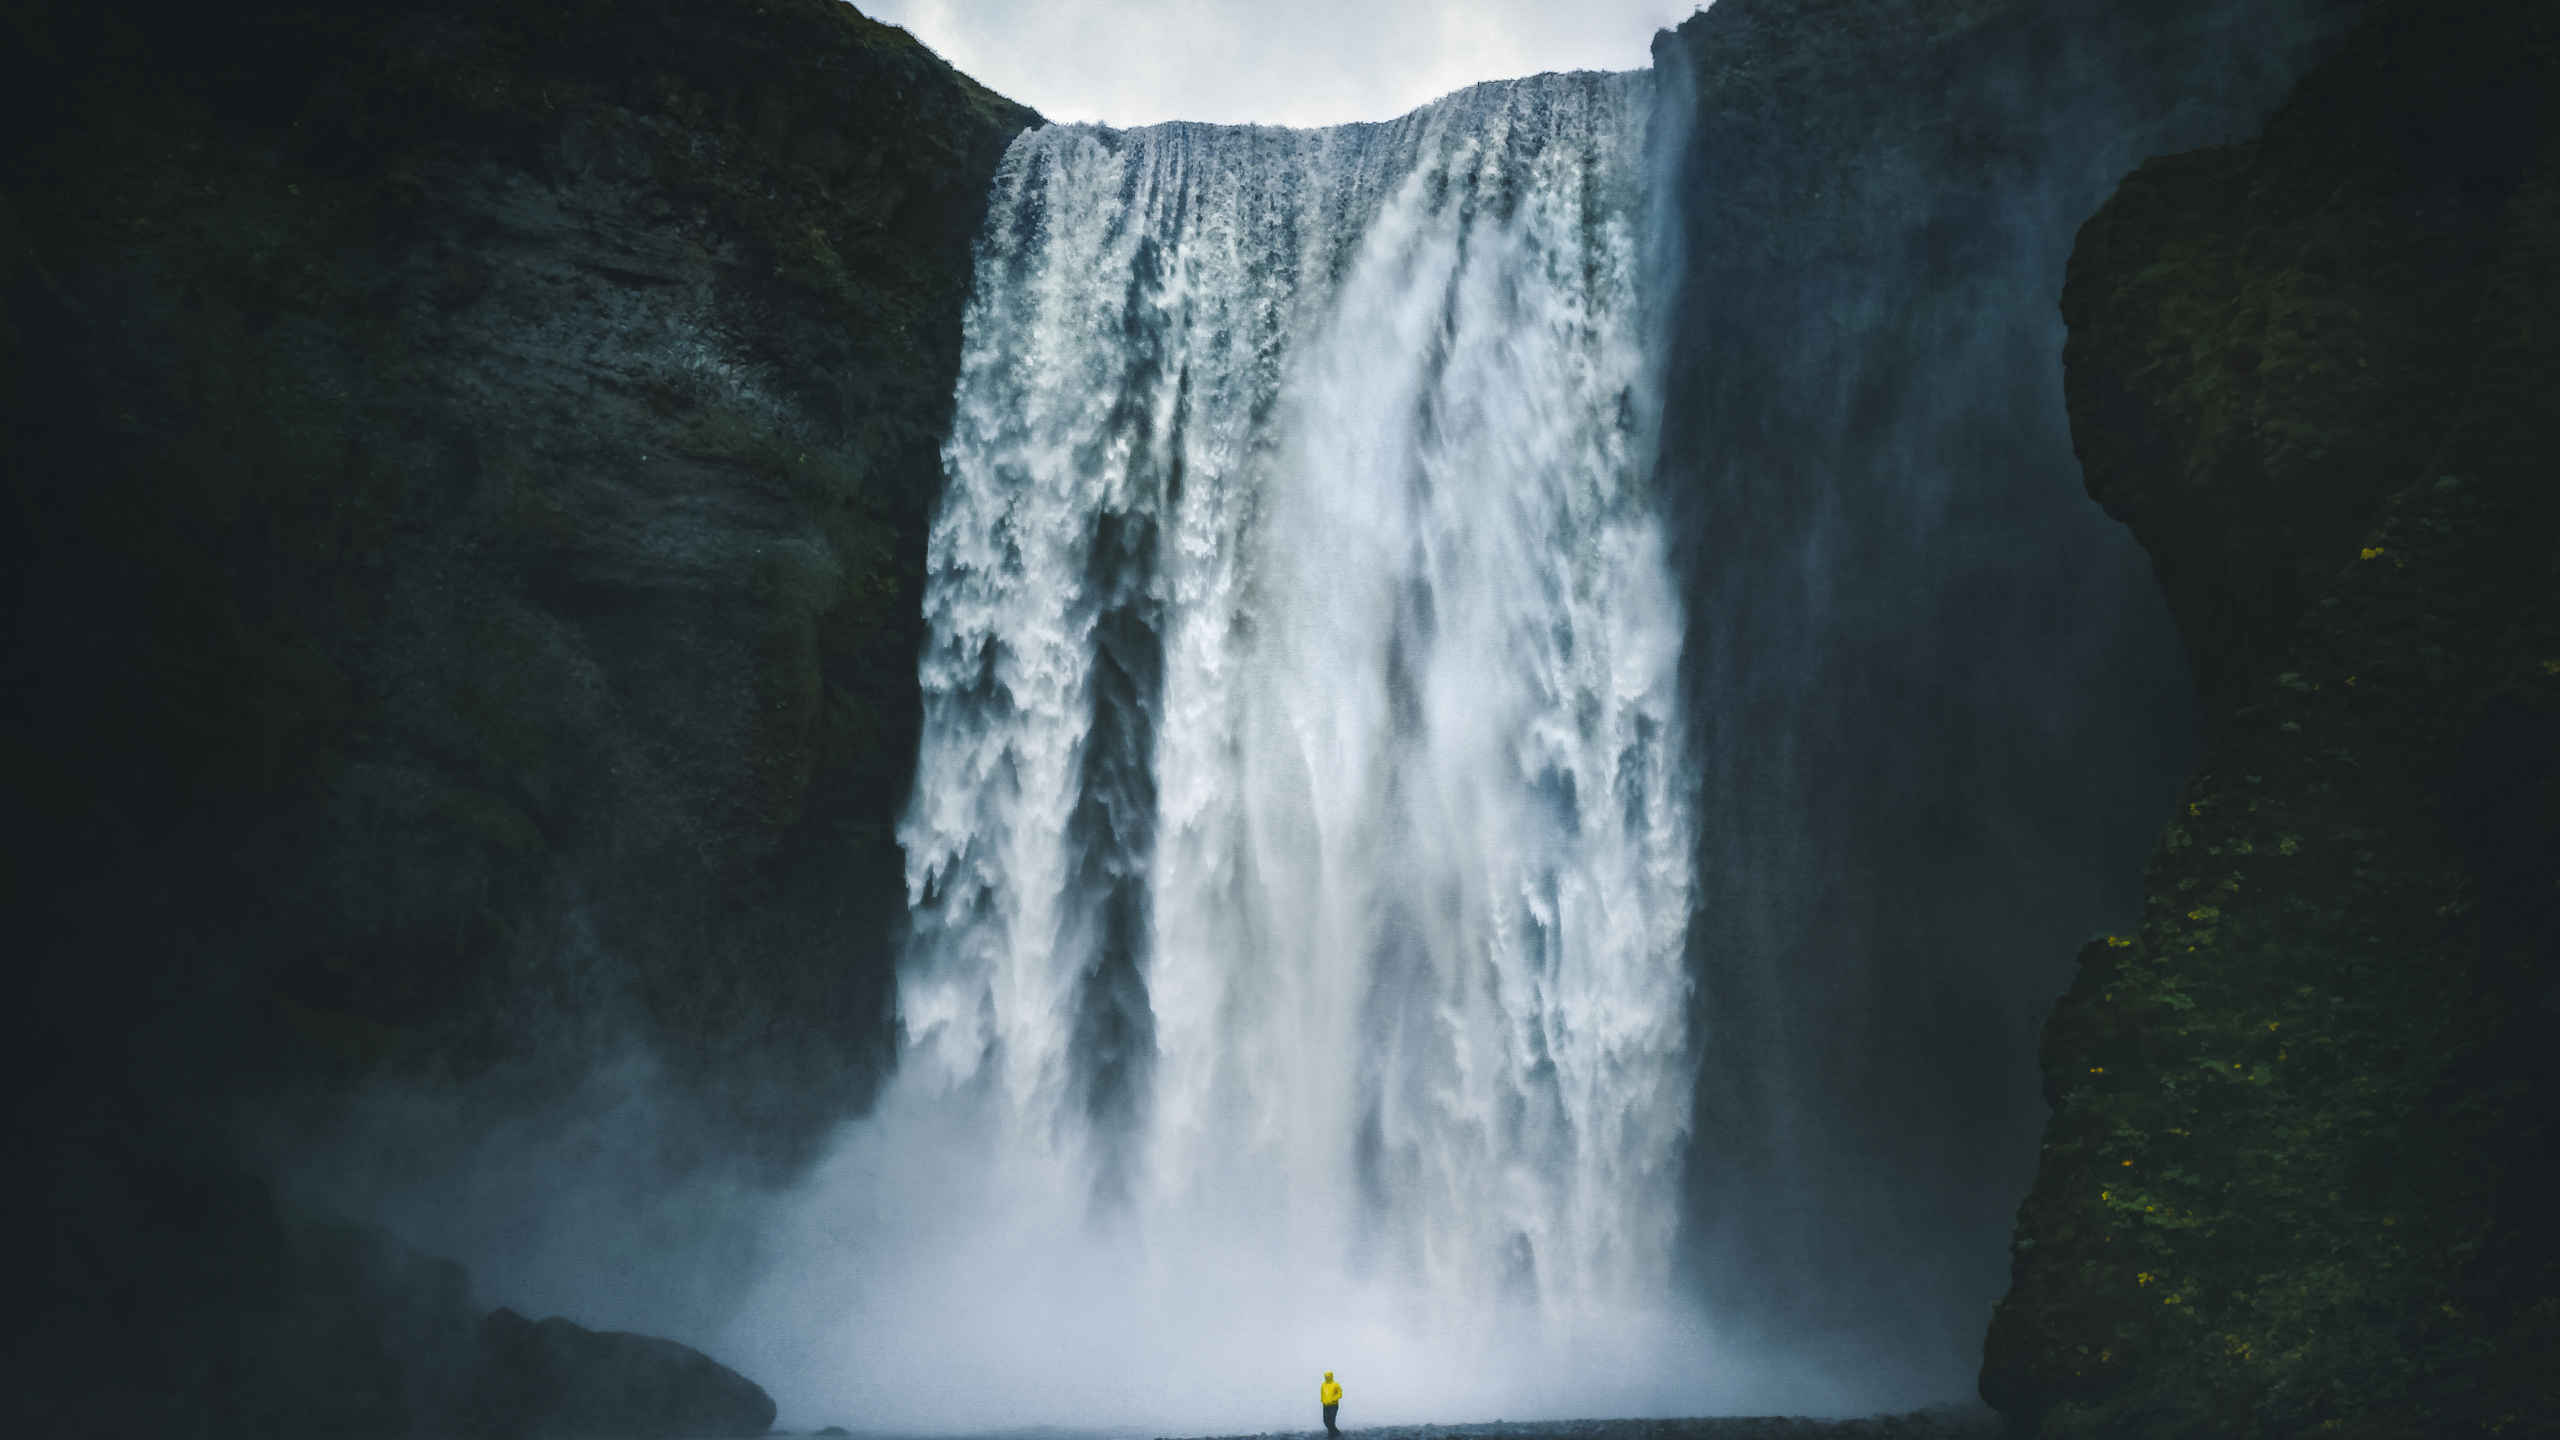 Skogafoss waterfall, one of South Iceland's magnificent waterfalls